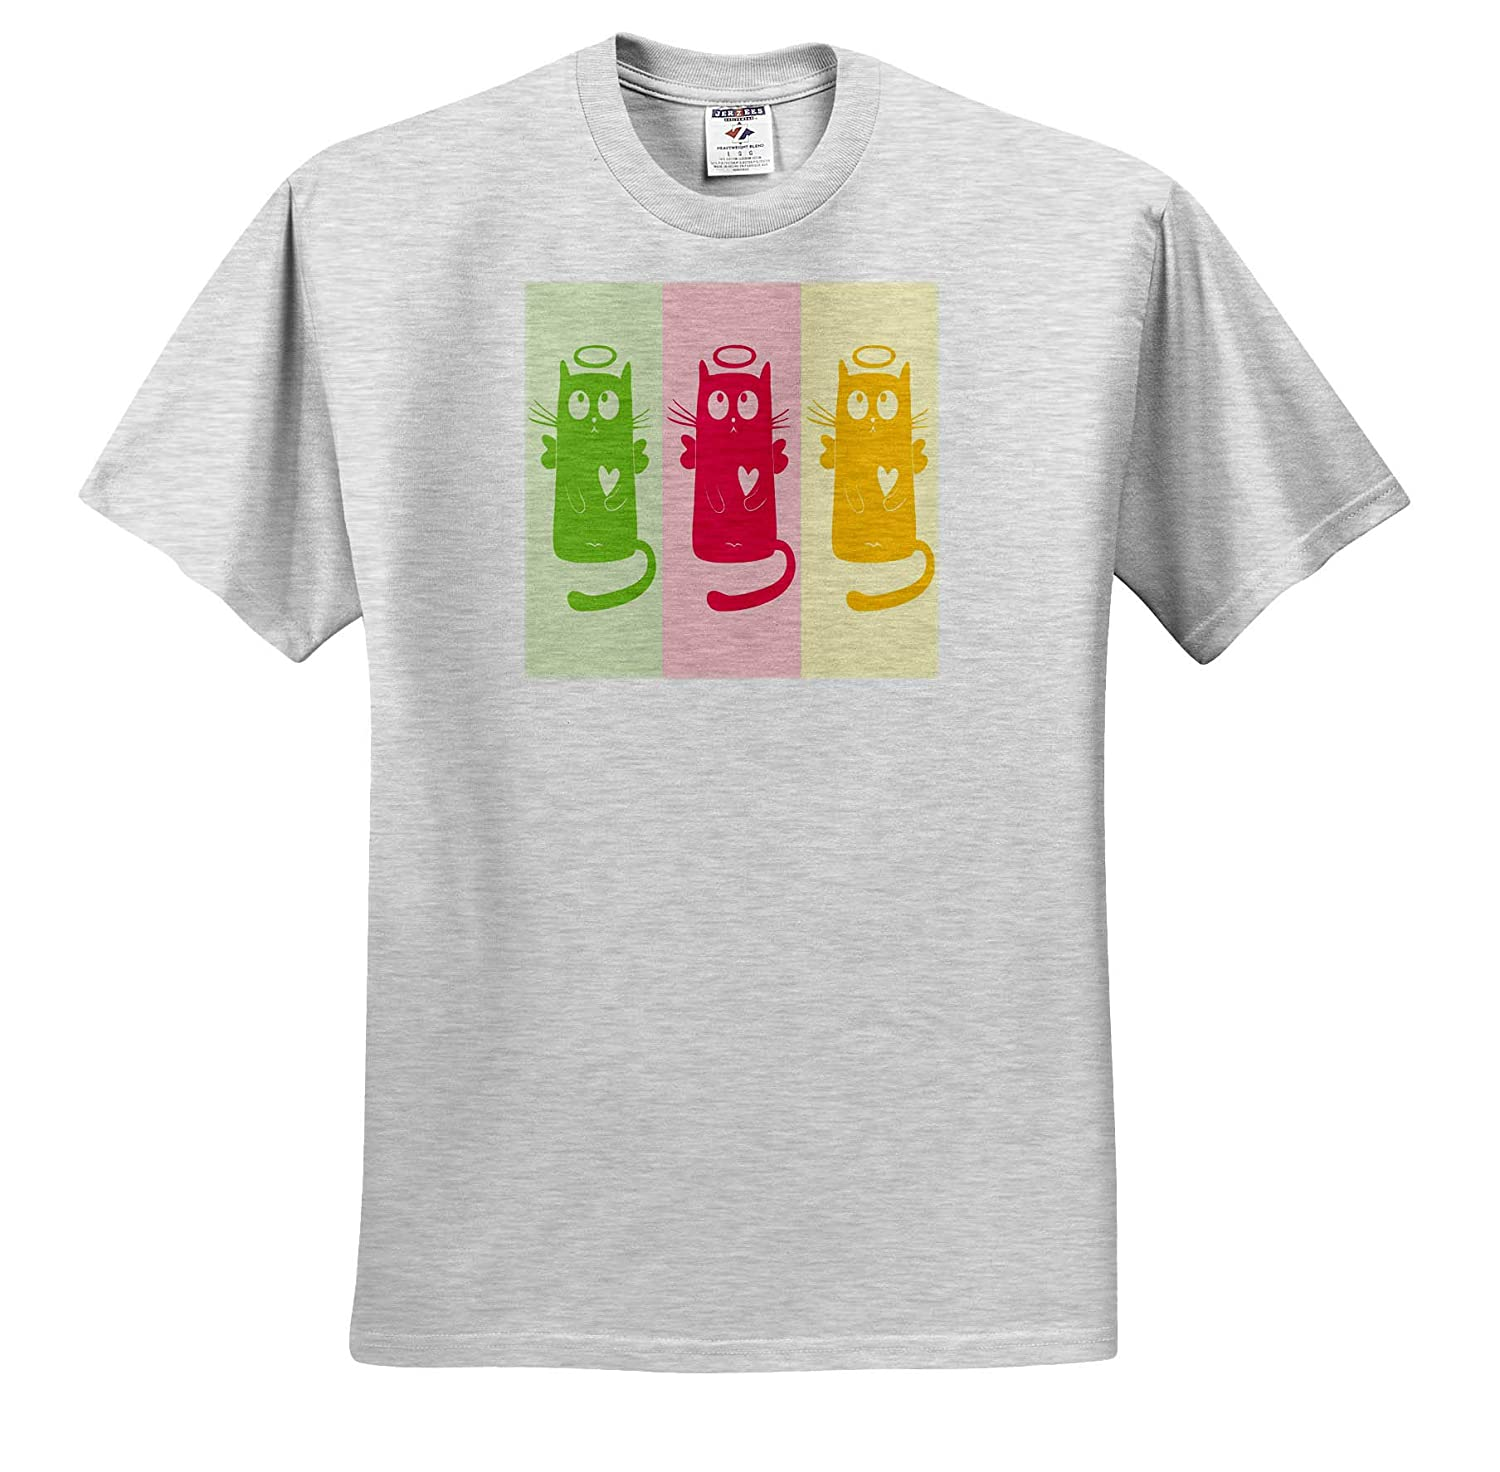 Childrens Art V 3dRose Lens Art by Florene Image of Cartoon with Three Cats in Green Pink and Yellow T-Shirts